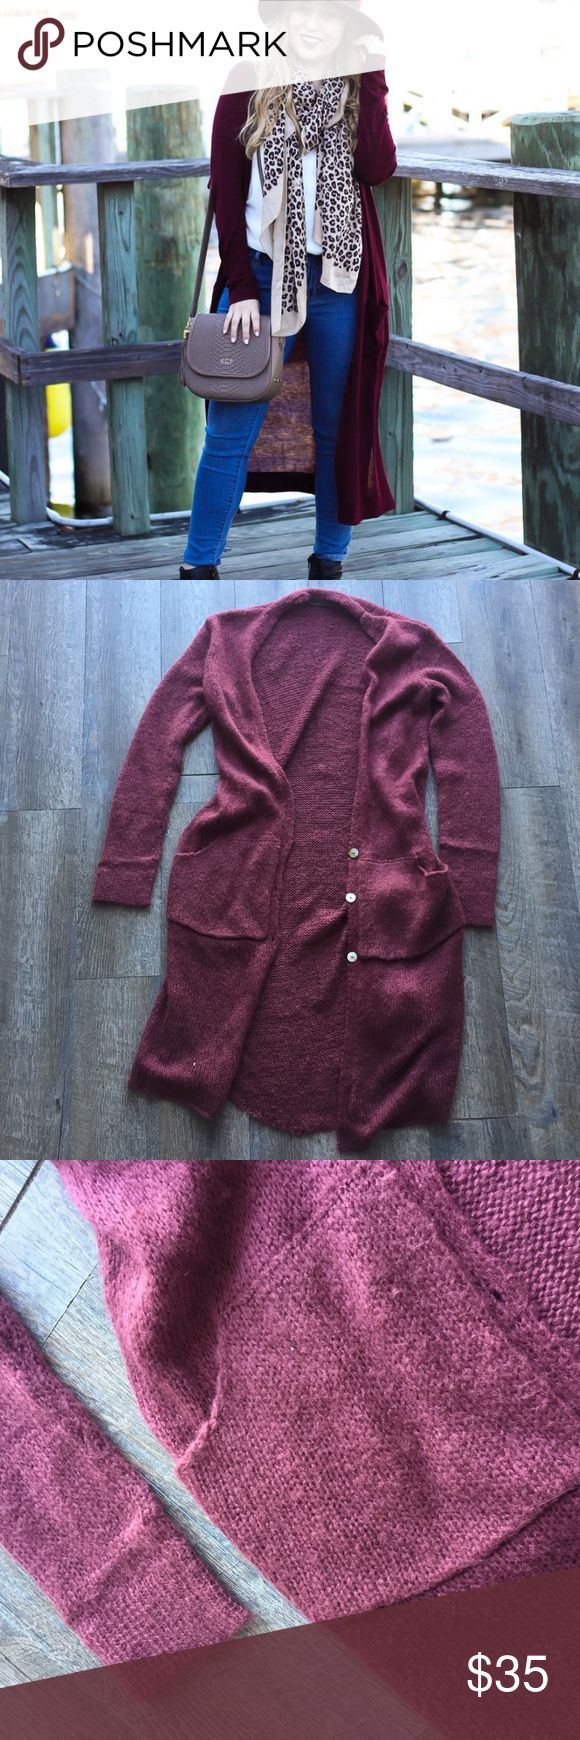 Maroon knit duster size small/medium form WS Very soft maroon duster form the brand wooden ships by Paola Beundia. Has two pockets, it is in a size small/medium. Smoke free home. Is great condition. Wooden Ships Sweaters Cardigans